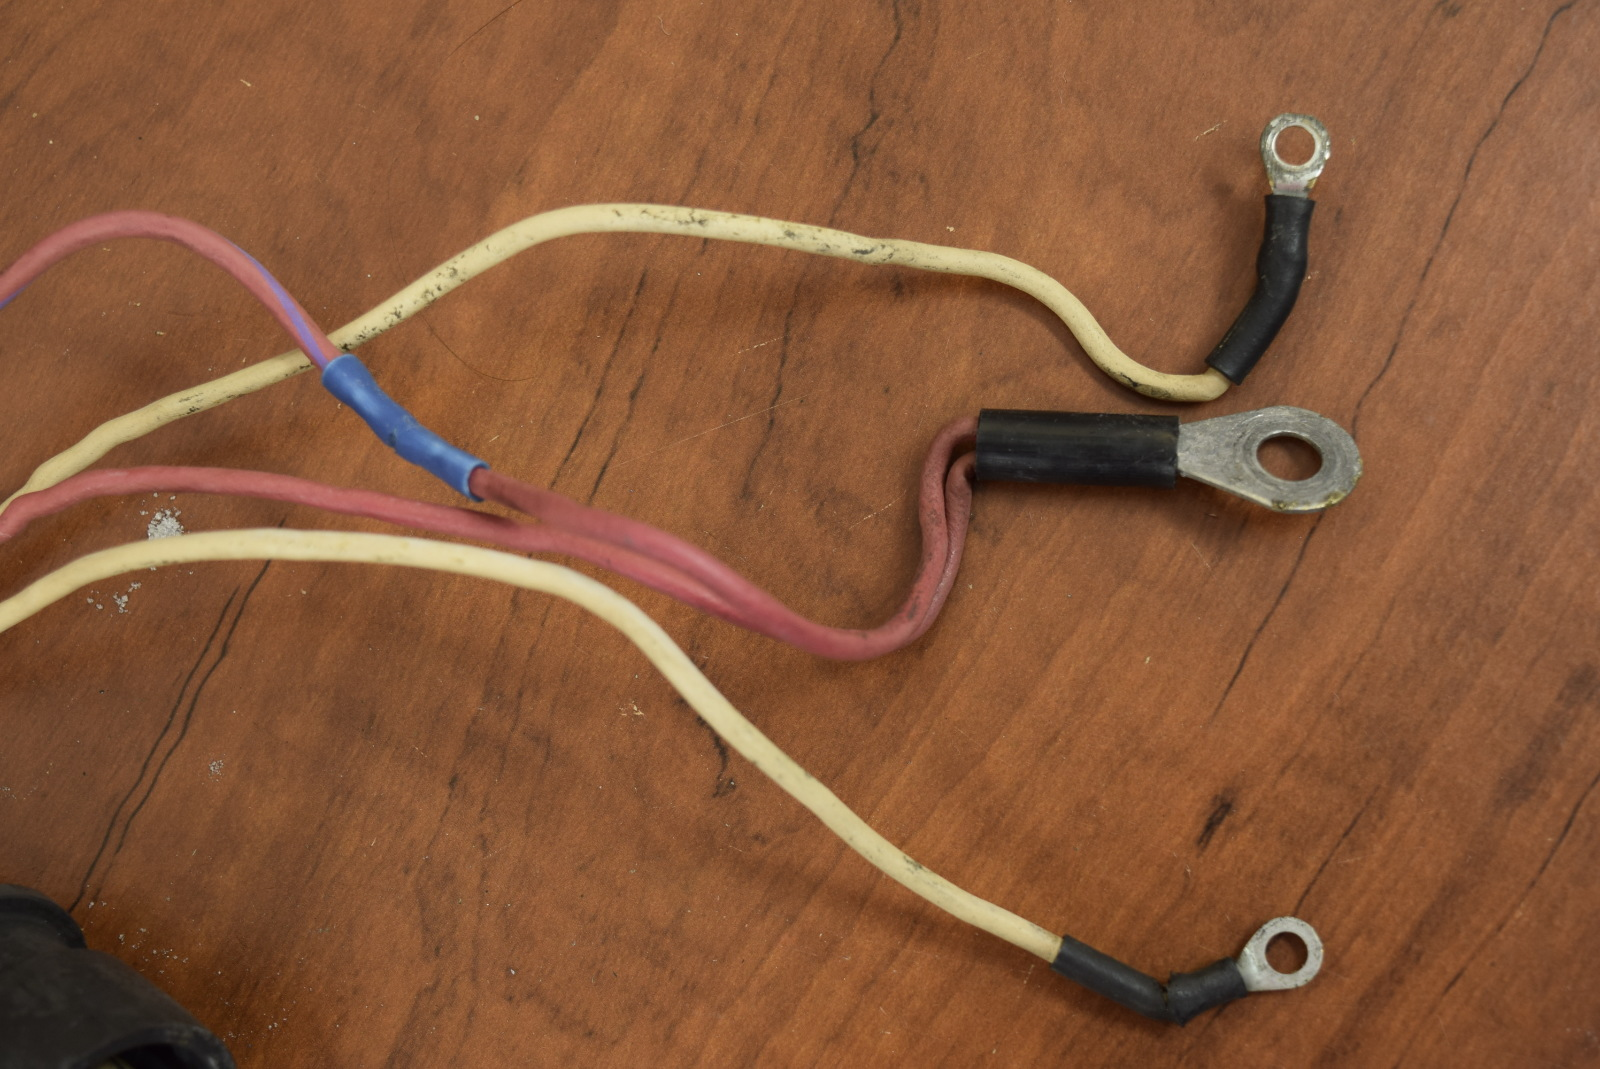 24775 mwh johnson evinrude motor cable wiring harness 1976 35 hp 2 johnson evinrude motor cable wiring harness 1976 35 hp motor wiring harness for a 1966 ford galaxie at panicattacktreatment.co